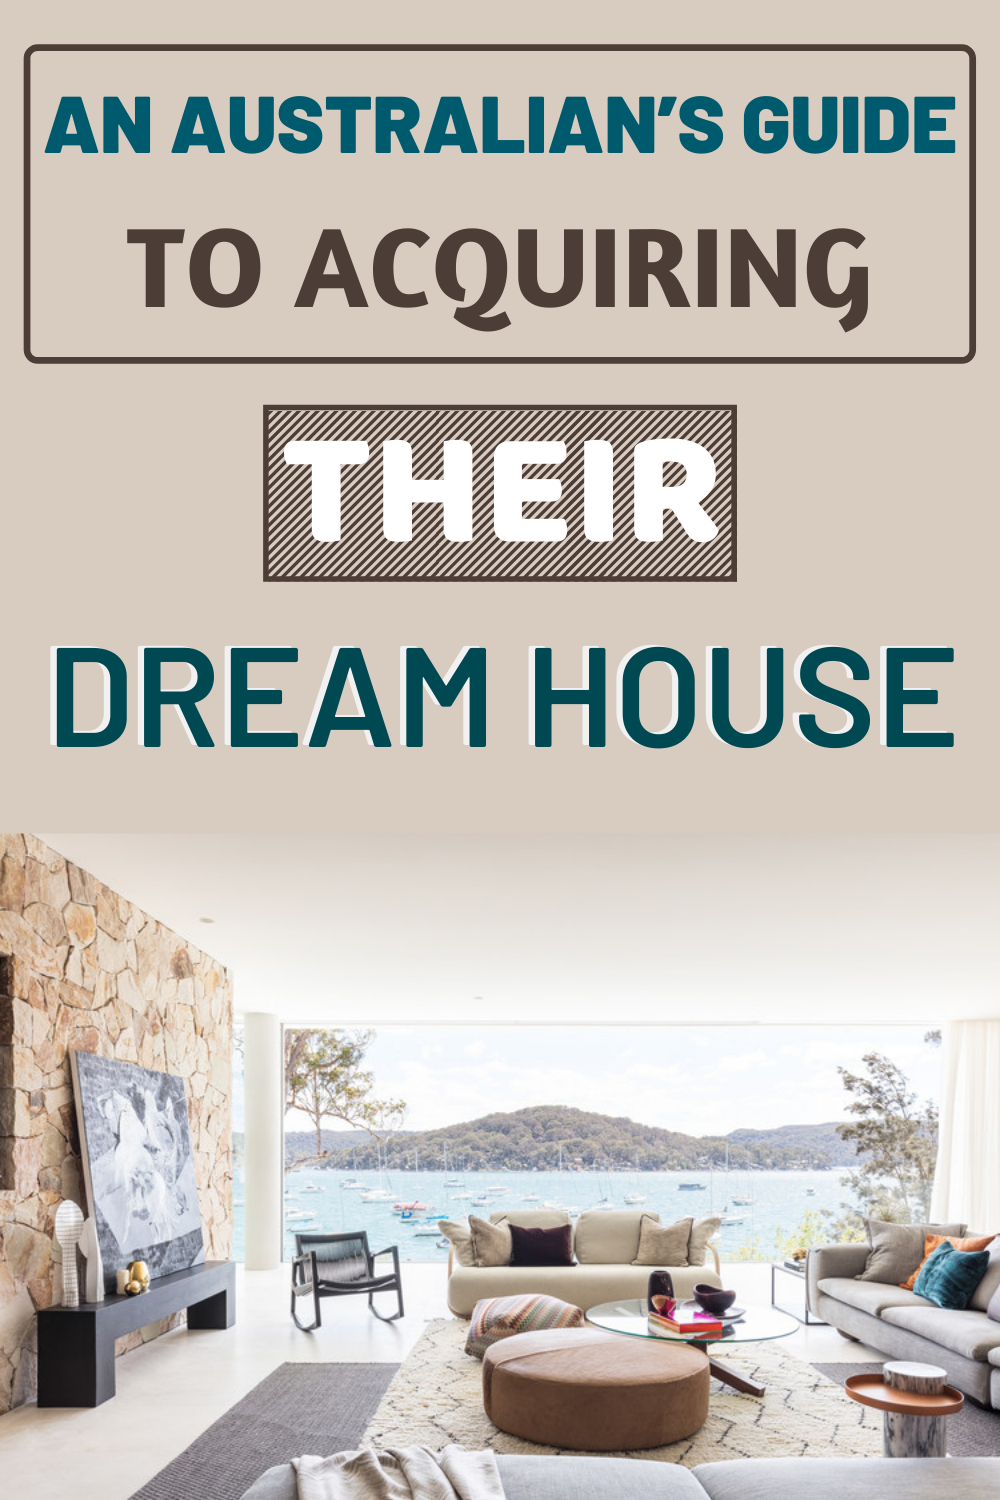 One of the most common dreams that most Australians have is to own a house. Fortunately, the home purchasing process is more accessible nowadays than it was before. This is due to the prominence of loaning options and custom home companies. #newhome #homebuild #homebuilder #australiahomebuild #customhomedesign #dreamhomeaustralia #dreamhome #homesdecor #homesideas #homestyles #awesomehomesideas #homesinspiration #inspiringhomes #newhomes #foreverhome #homedecoration #houseplan